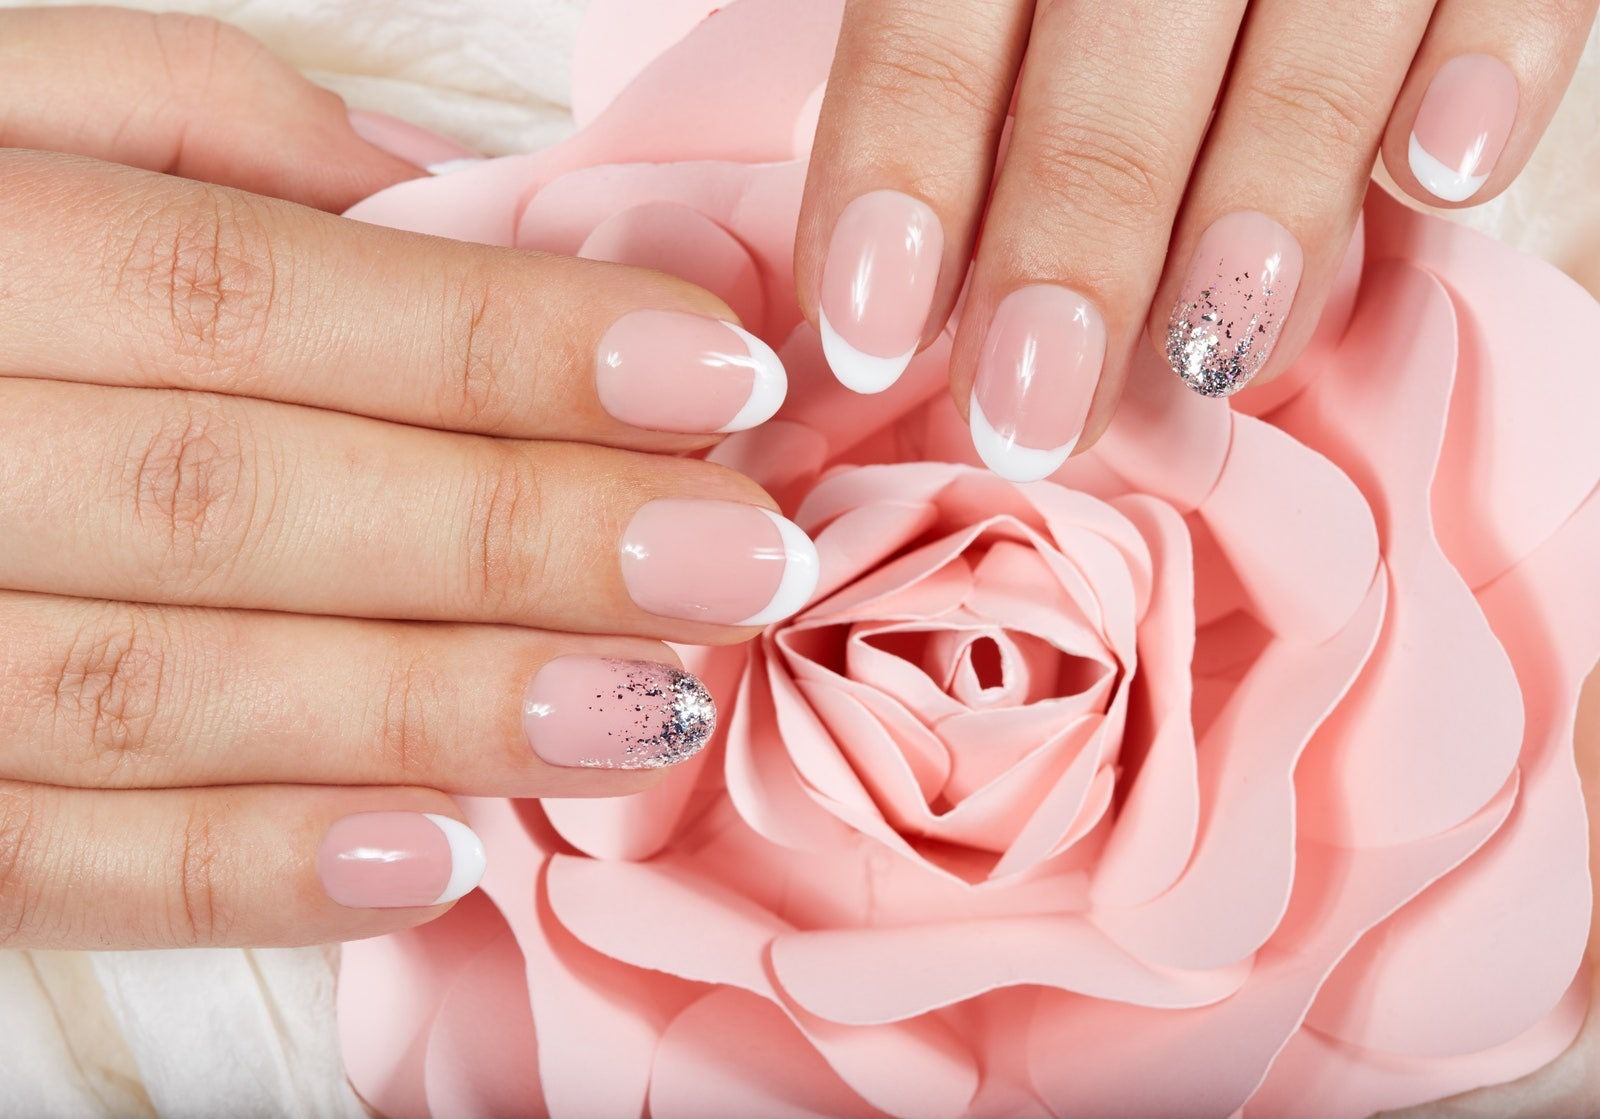 Pin By Whimsy Fairy On Hair Beauty Nails In 2020 Nail Salon And Spa Glamour Nails Best Nail Salon